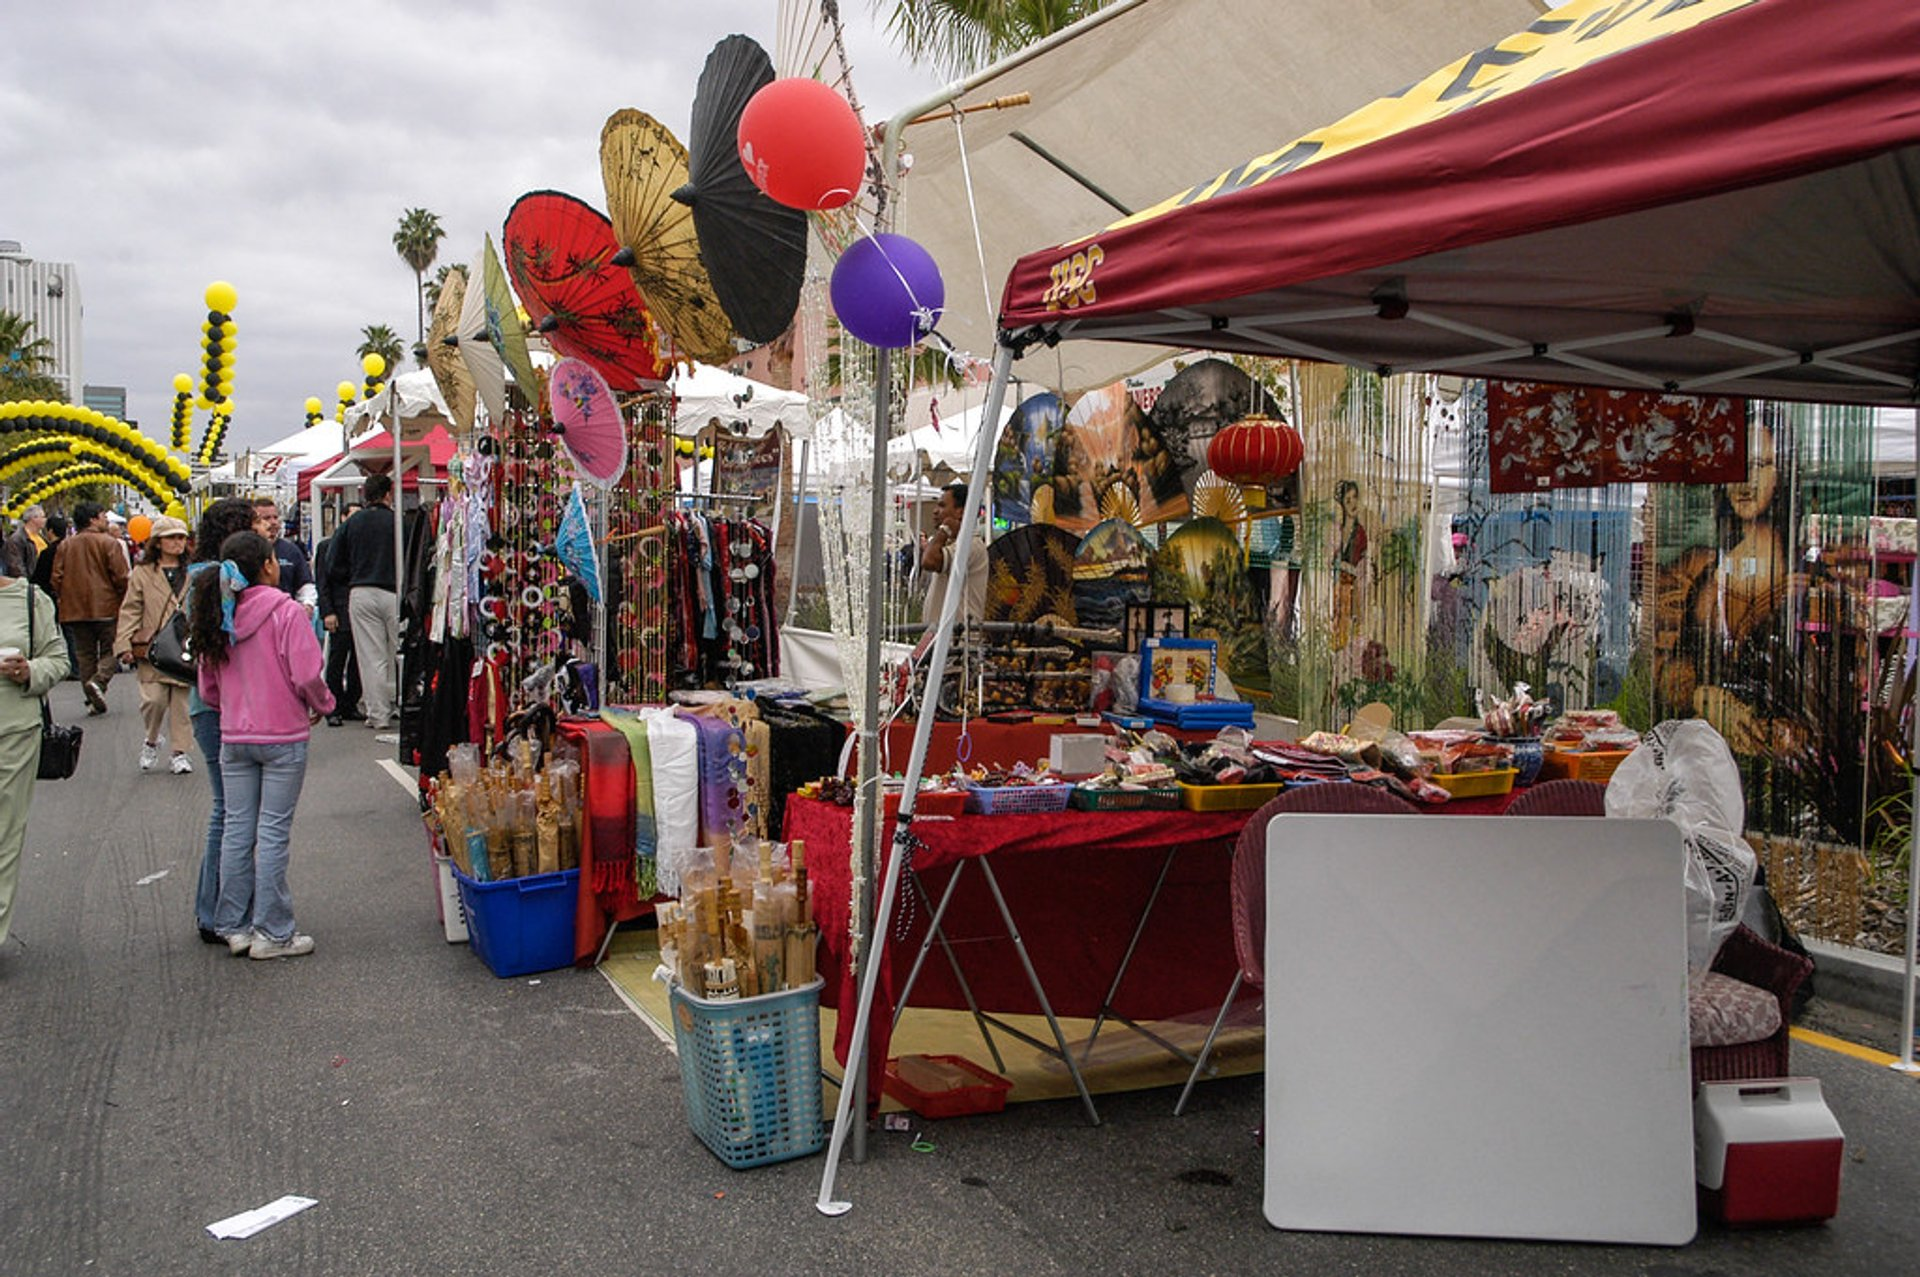 Sherman Oaks Street Fair in Los Angeles - Best Season 2020